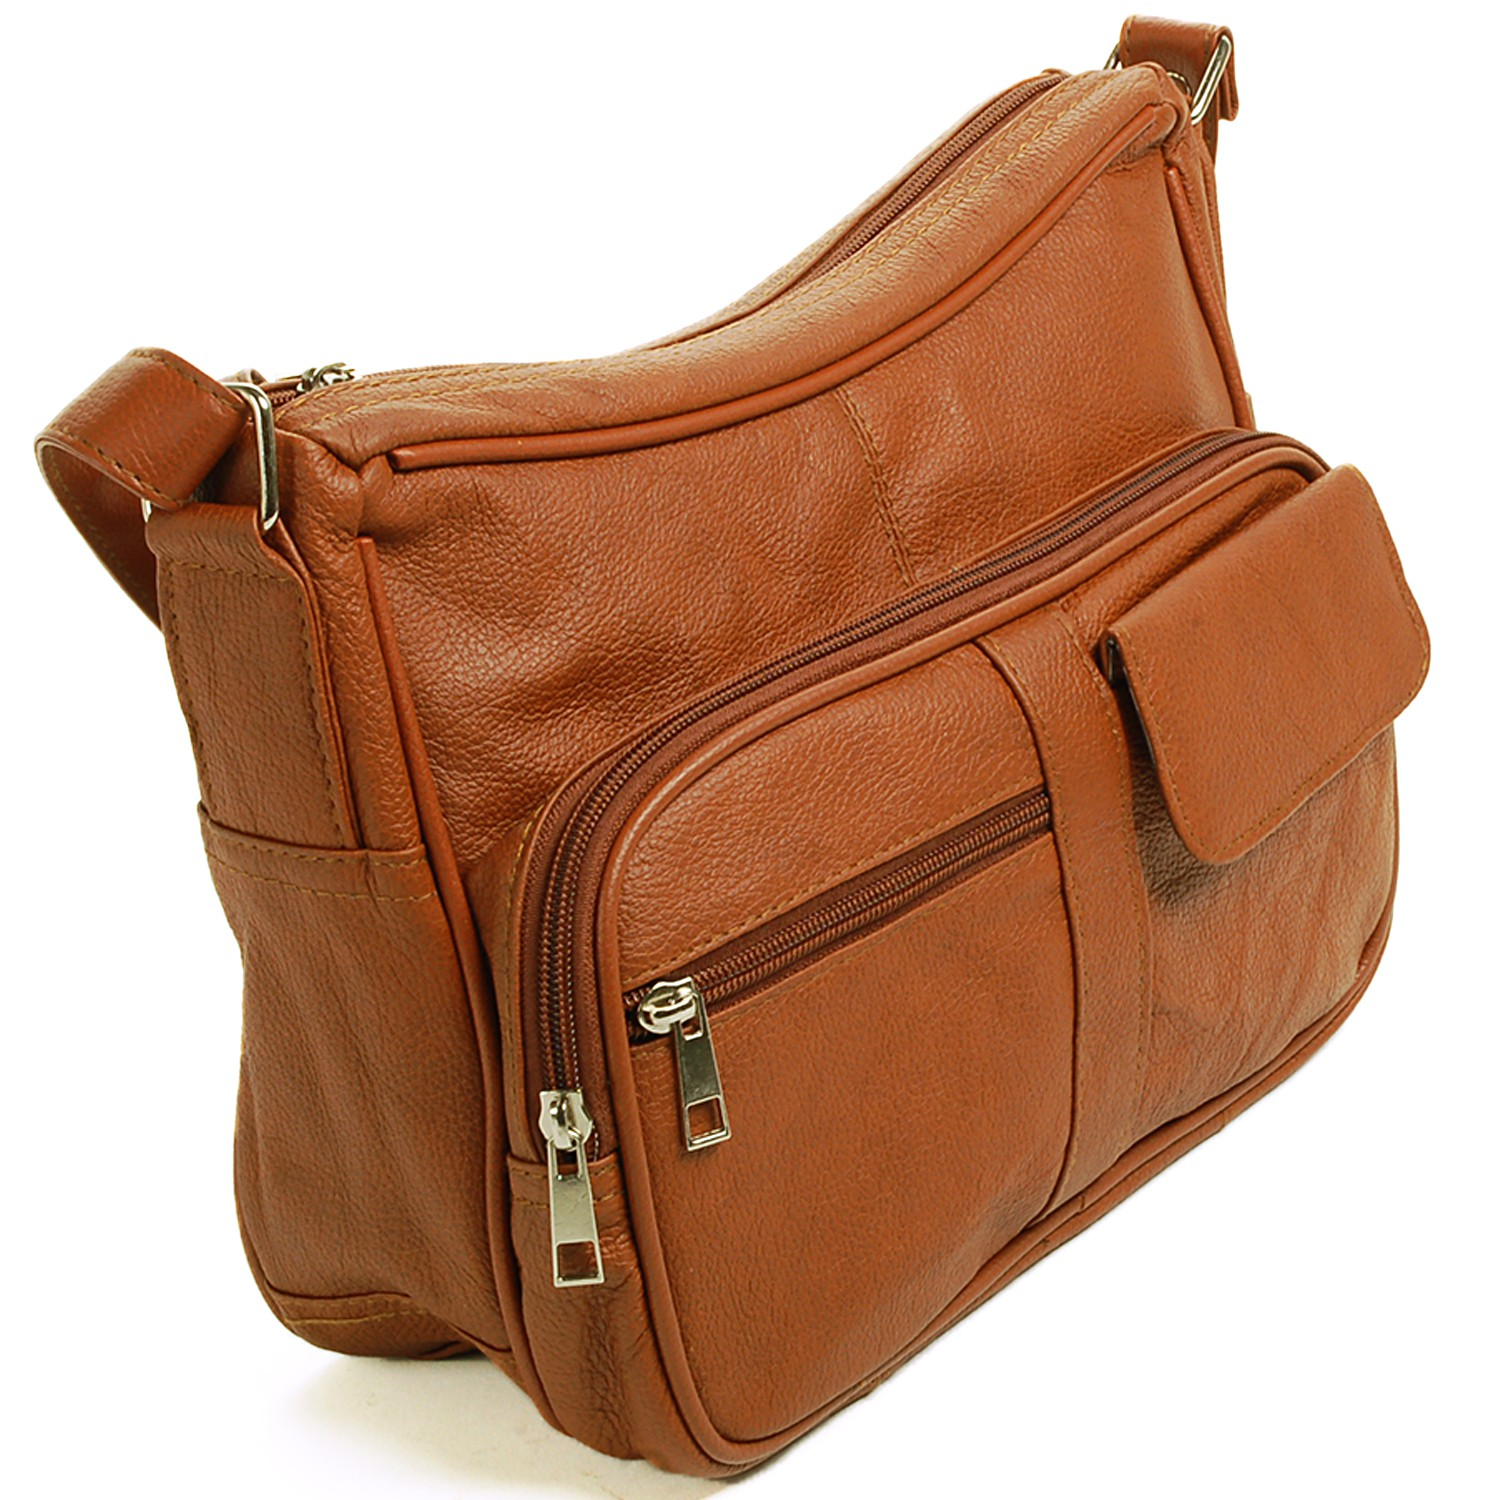 Women's Leather Organizer Purse Shoulder Bag Multiple Pockets ...